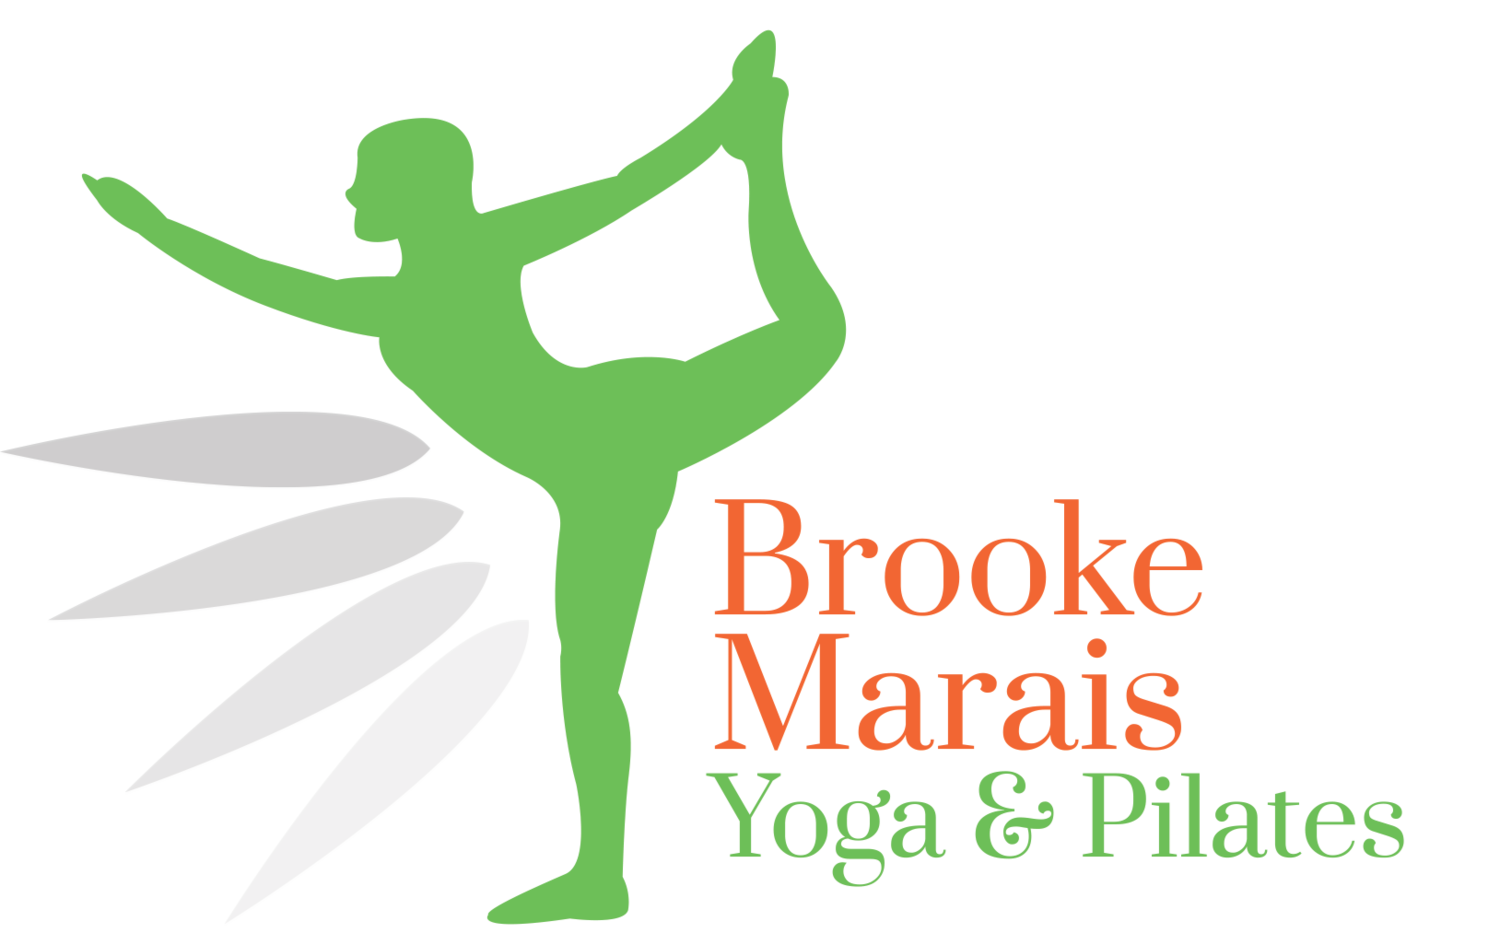 Brooke Marais Yoga & Pilates